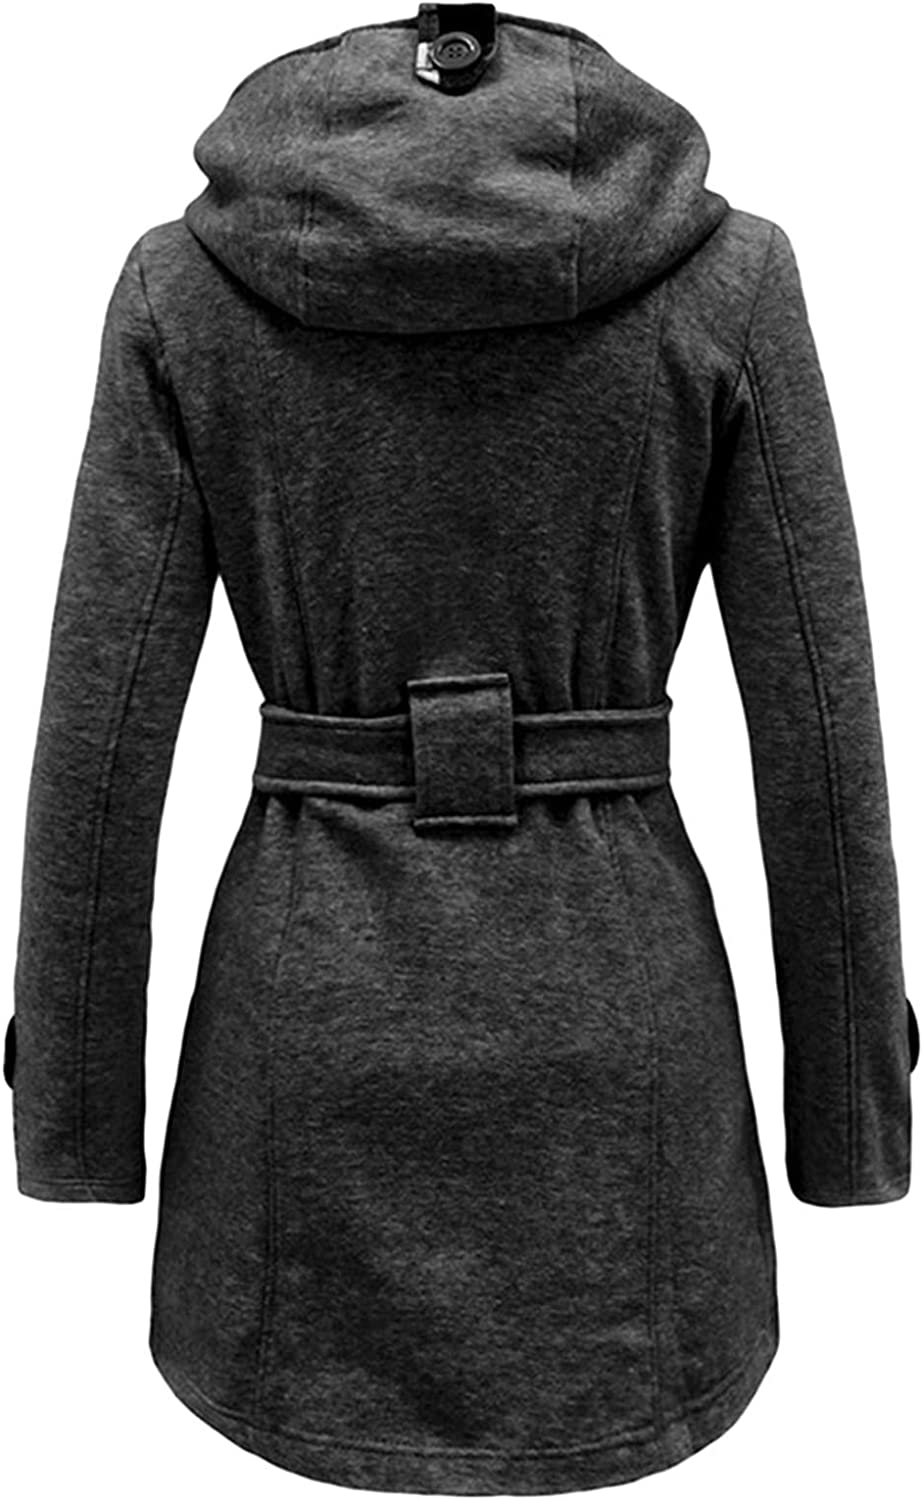 LXUICK Womens Long Sleeve Slim Pea Coat Mid-Long Solid Color Trench Coat with Belt